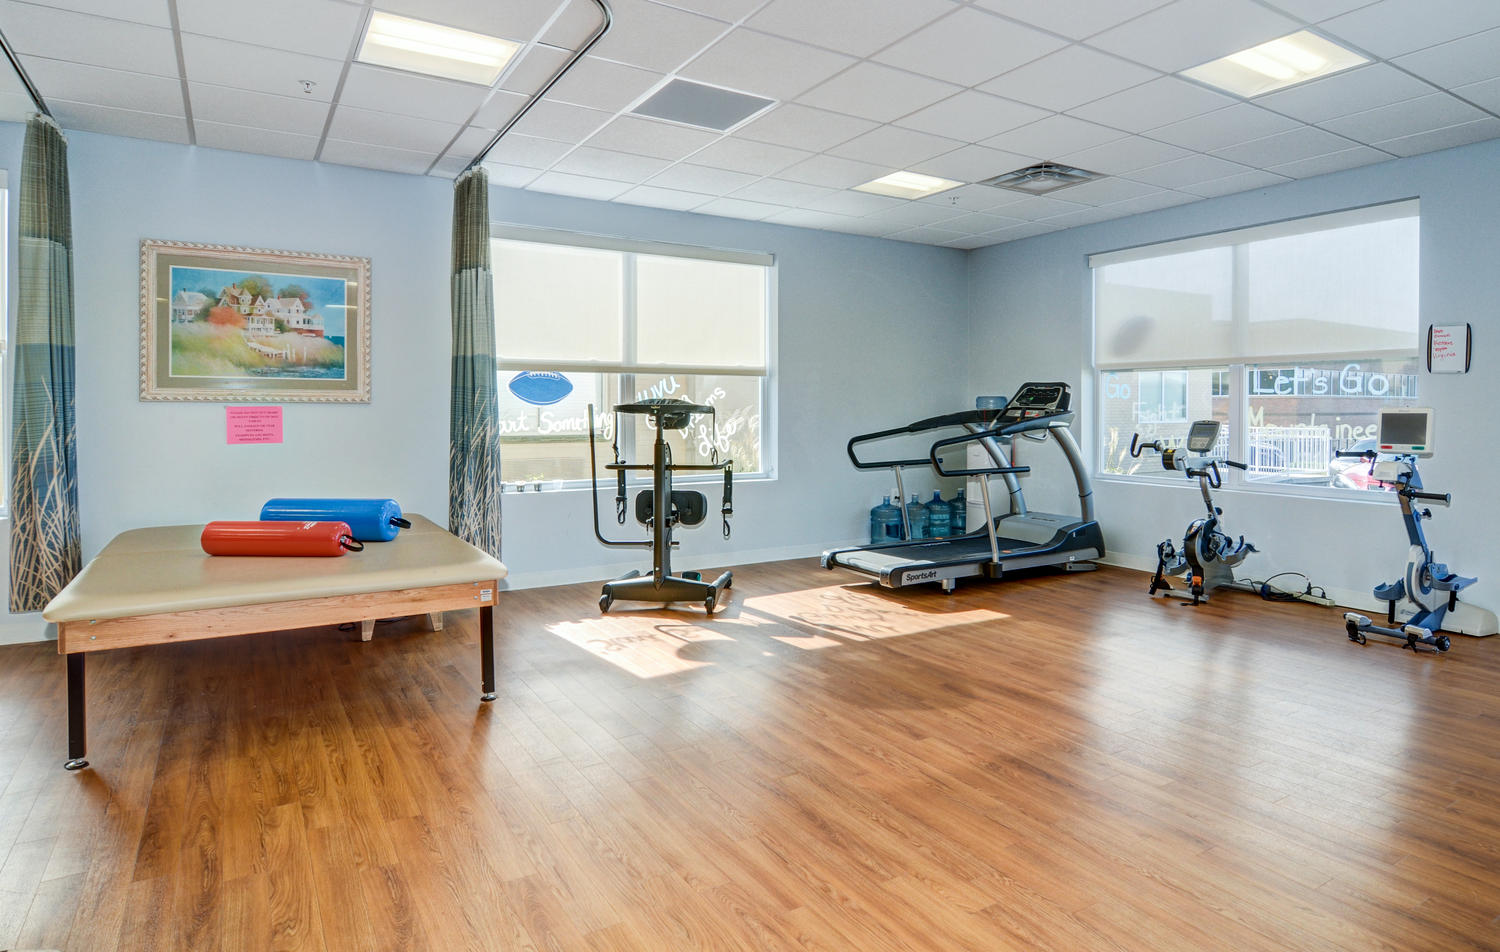 Stonerise Morgantown Therapy and Rehabilitation room with exercise equipment and sun shining through windows